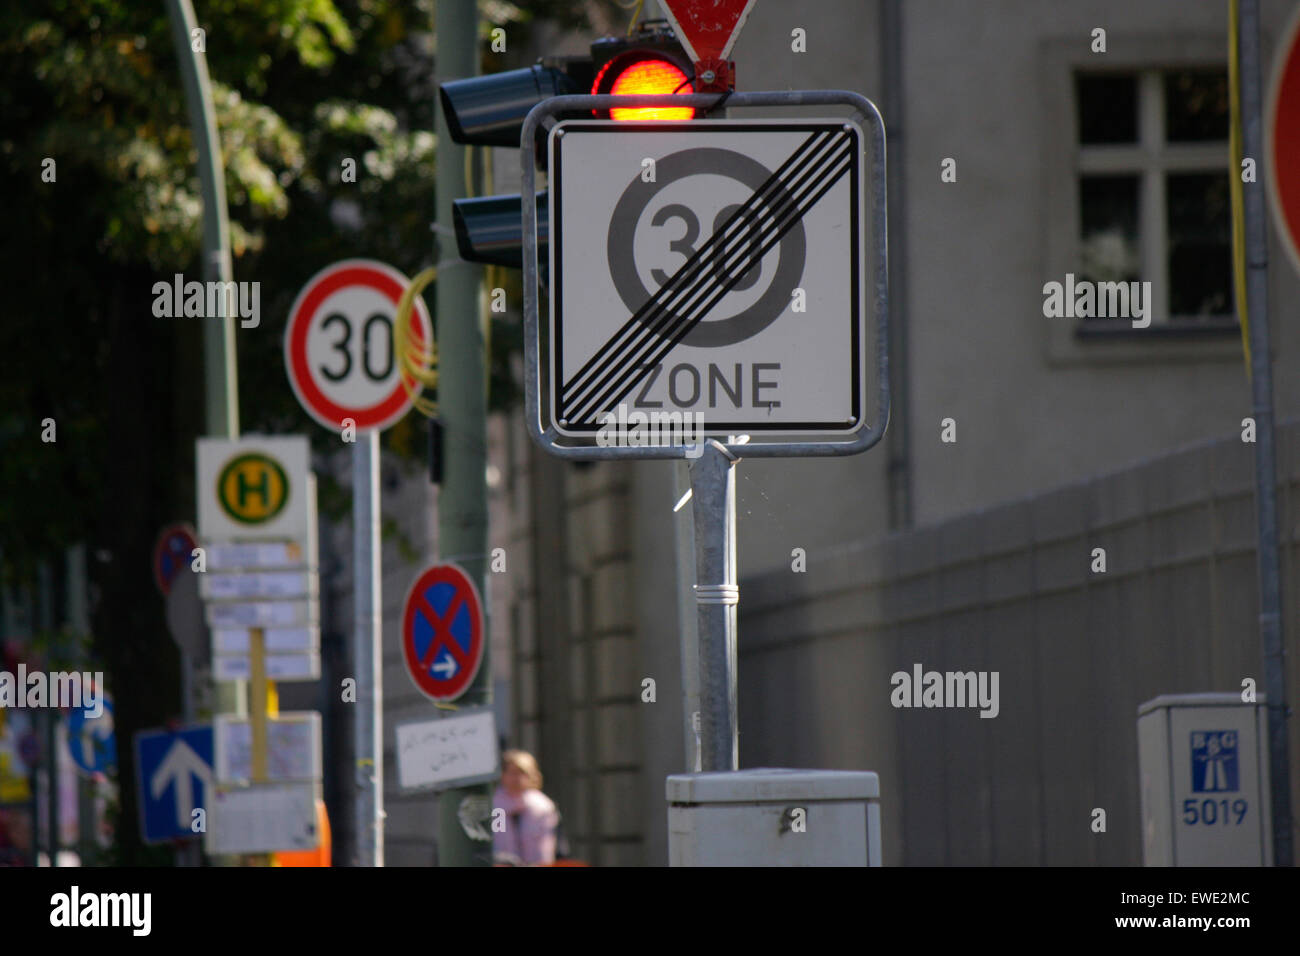 SEPTEMBER 2013 - BERLIN: waste of money in the public sector: contradictory and useless traffic signs in Berlin. Stock Photo